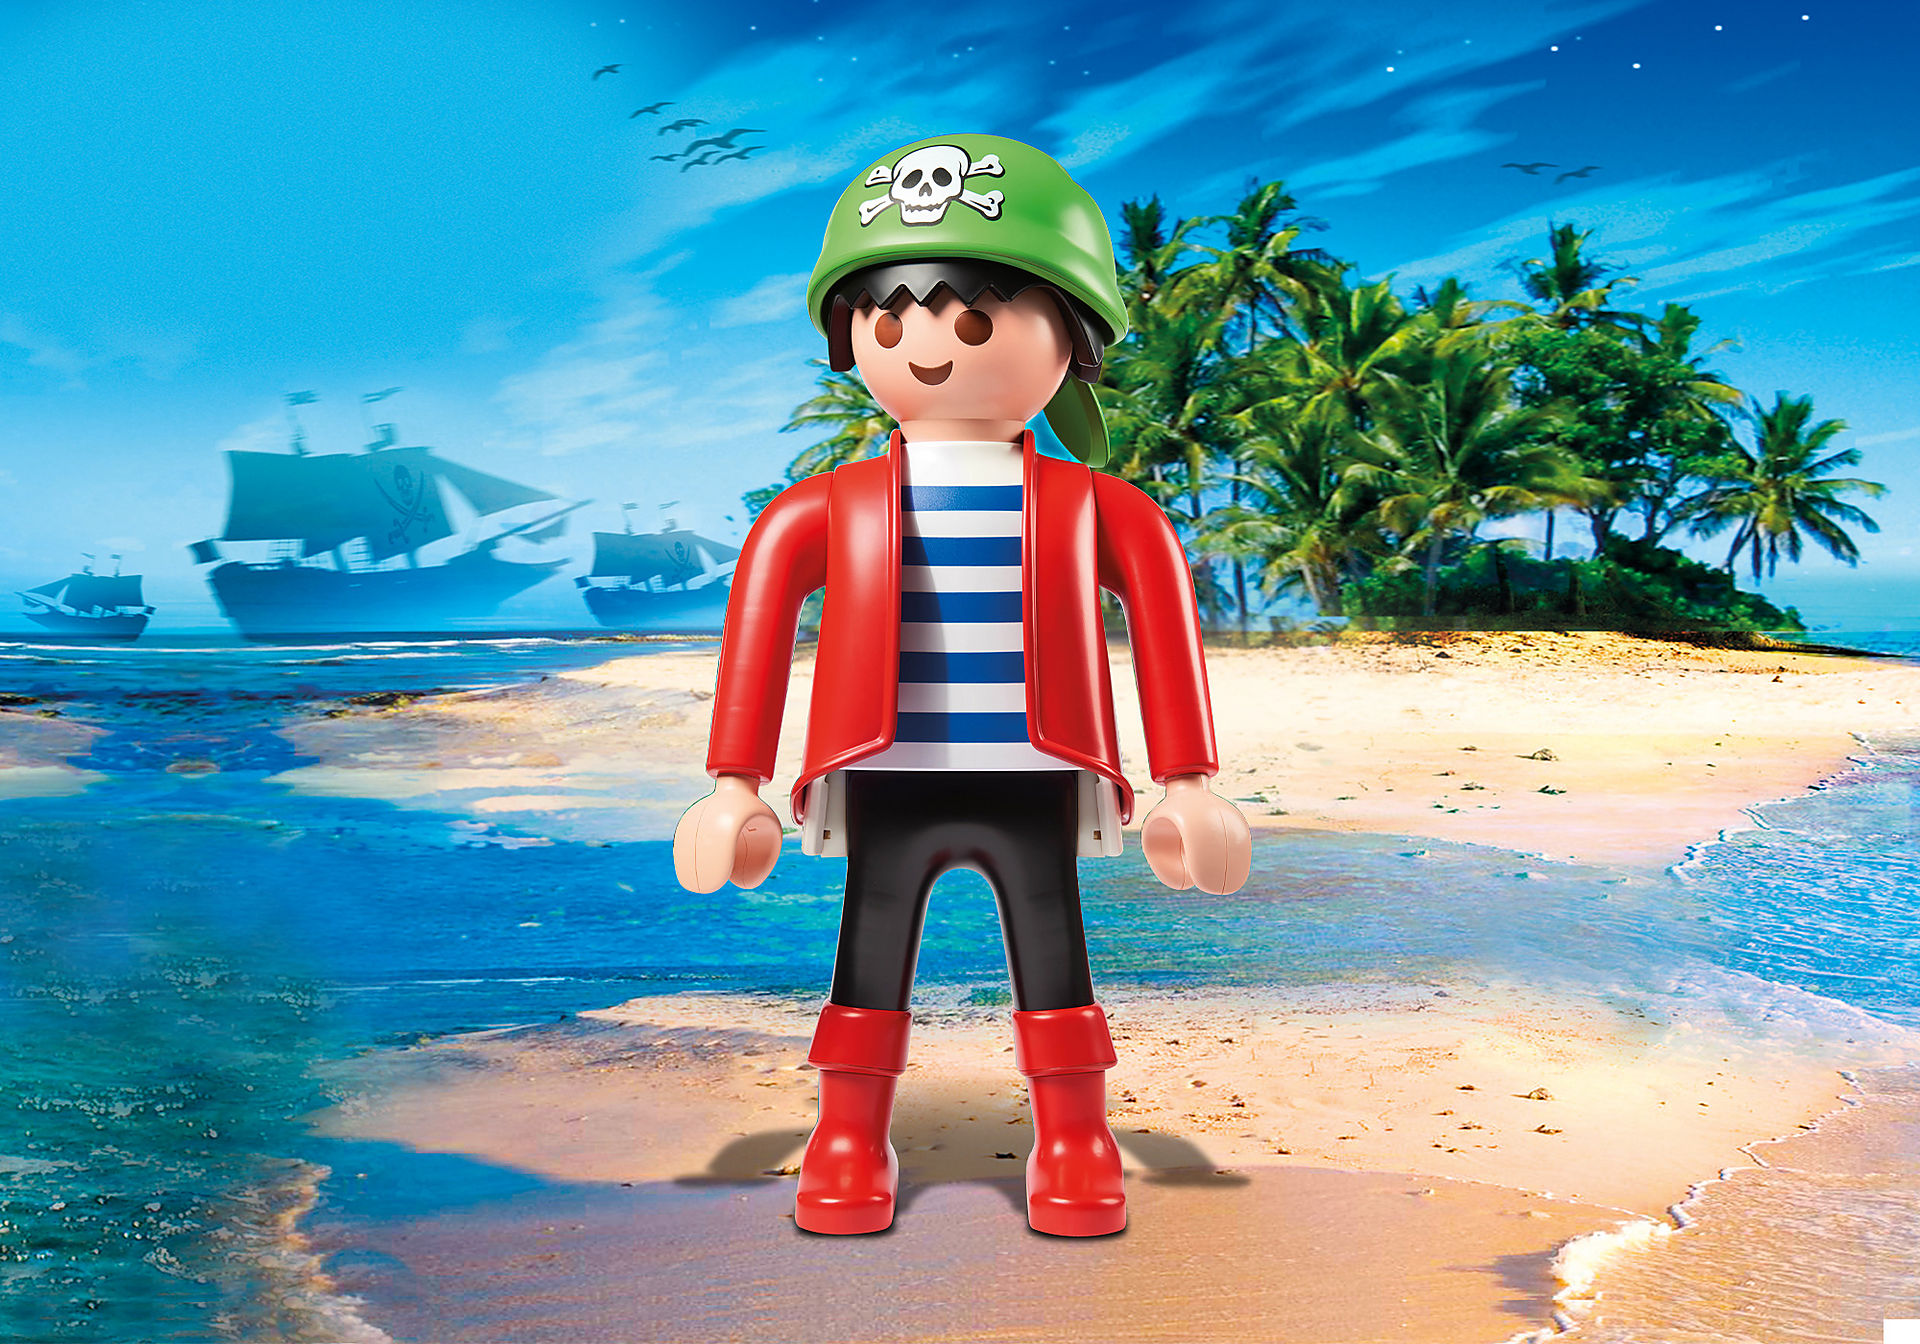 70631 PLAYMOBIL XXL Pirate Rico zoom image1